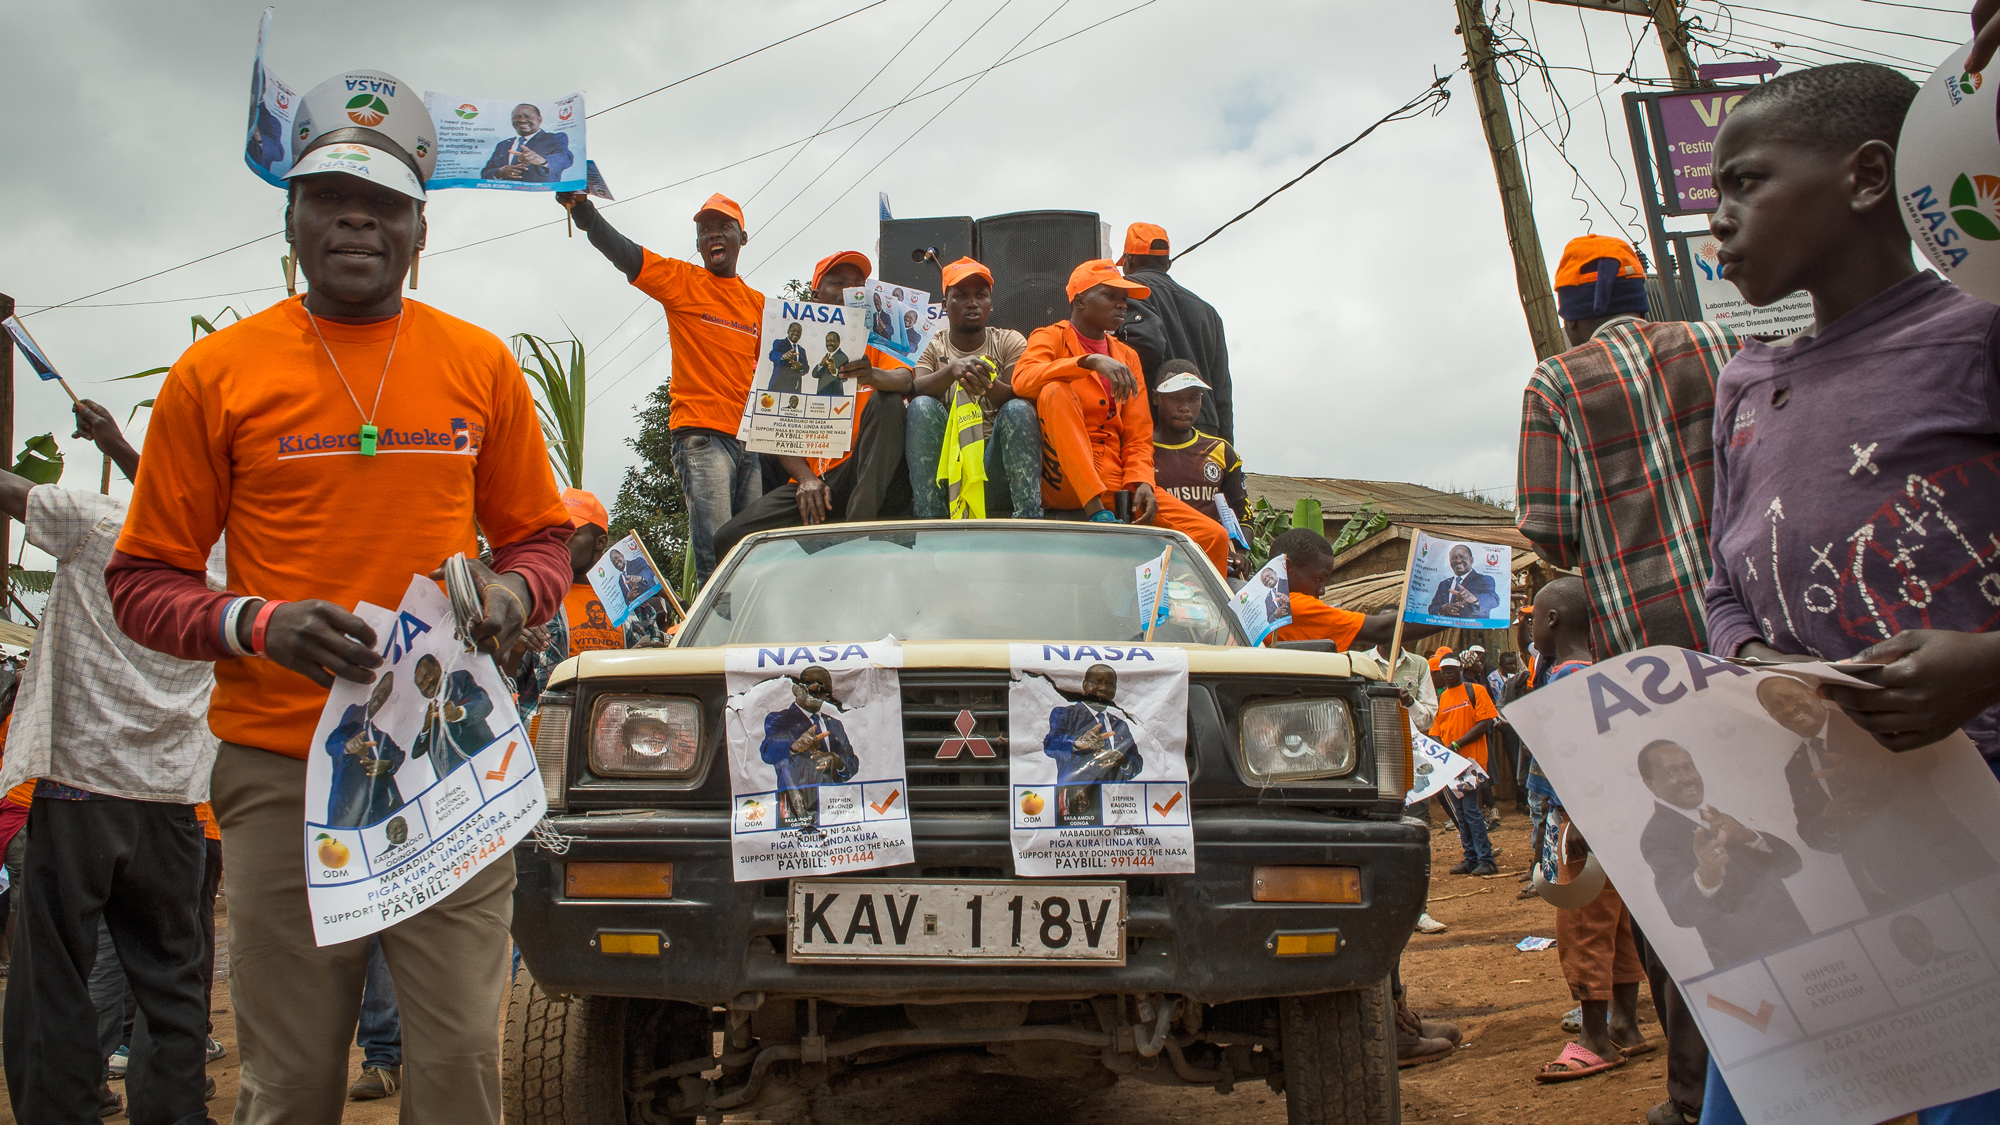 Opposition party members chant campaign slogans in support of National Super Alliance Presidential candidate, Raila Odinga in Kibera, Nairobi. Kenya's upcoming elections pinned current President Uhuru Kenyatta against his long-time rival Odinga, who has c